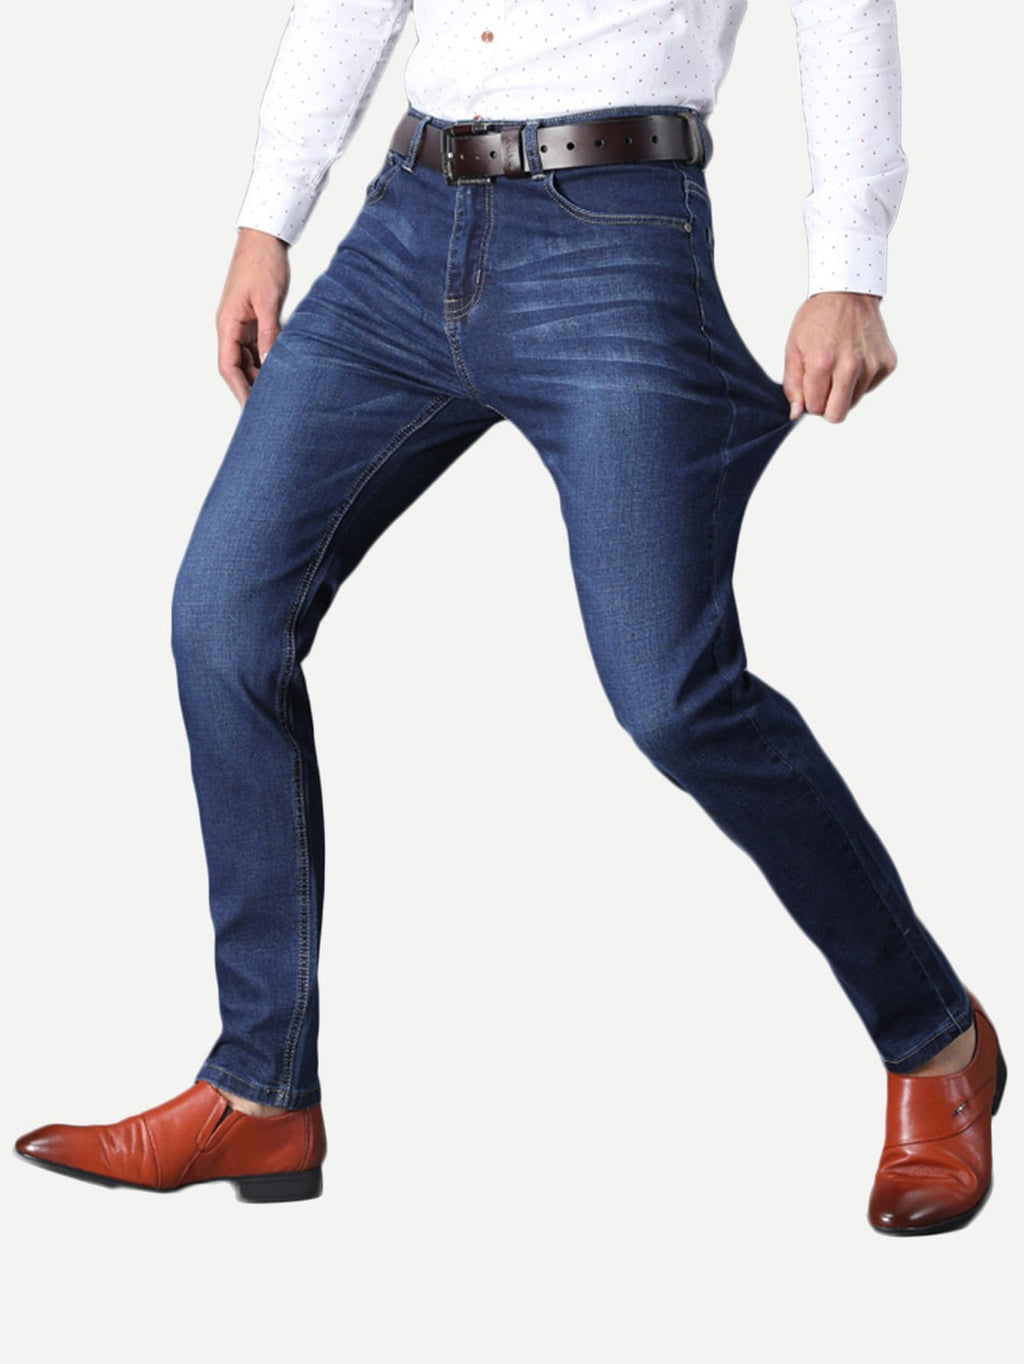 Men's Denim - Washed Straight Jeans